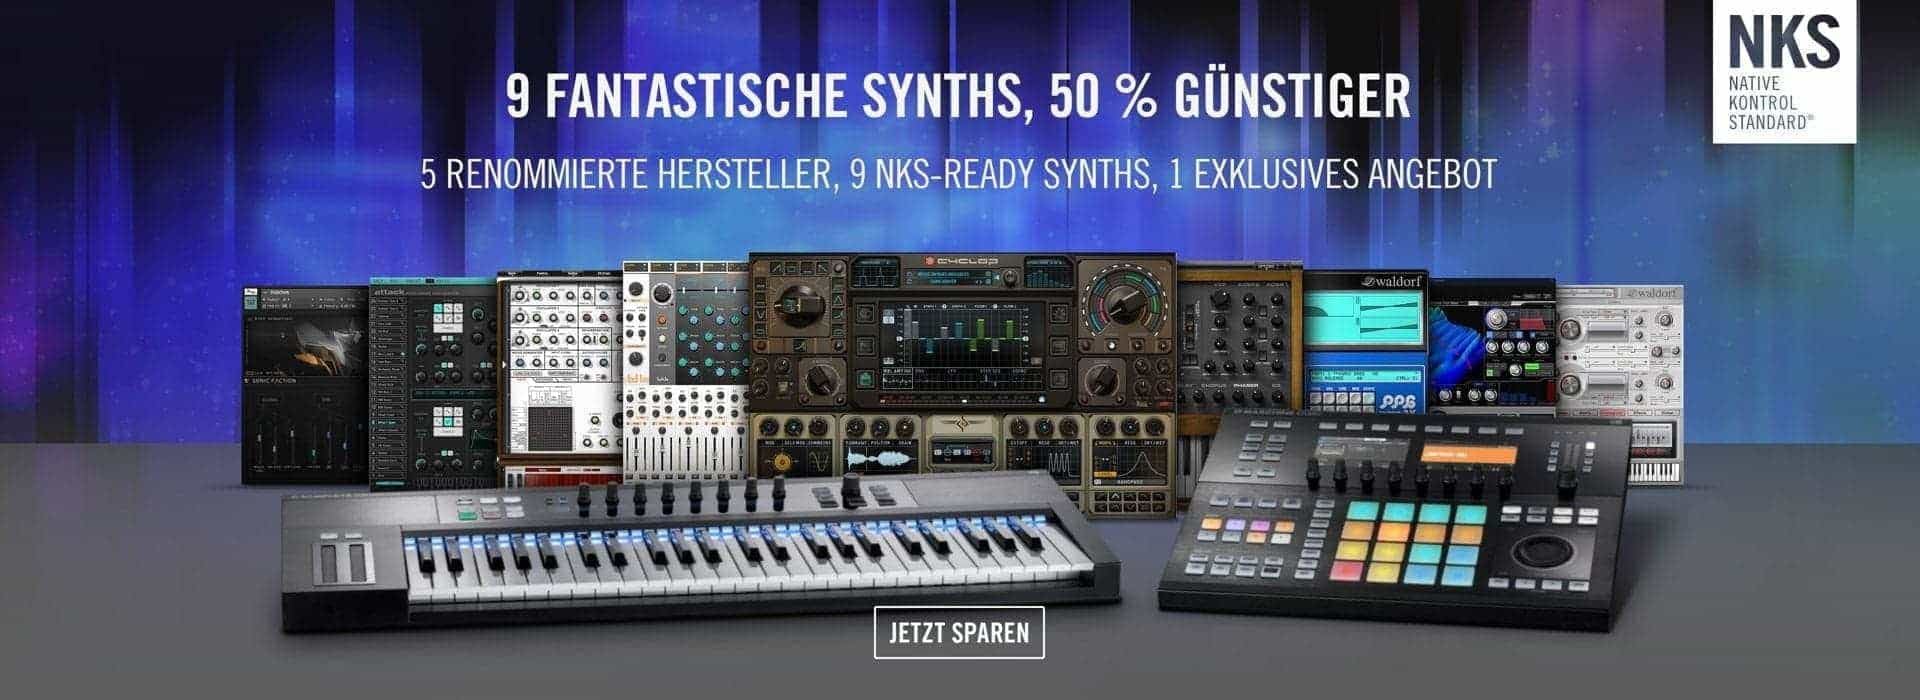 img-homepage-nks_synths-sales-special_homepage-banner_desktop_de-a89ec8a58232cba0bf5d476c4cd6be12-d